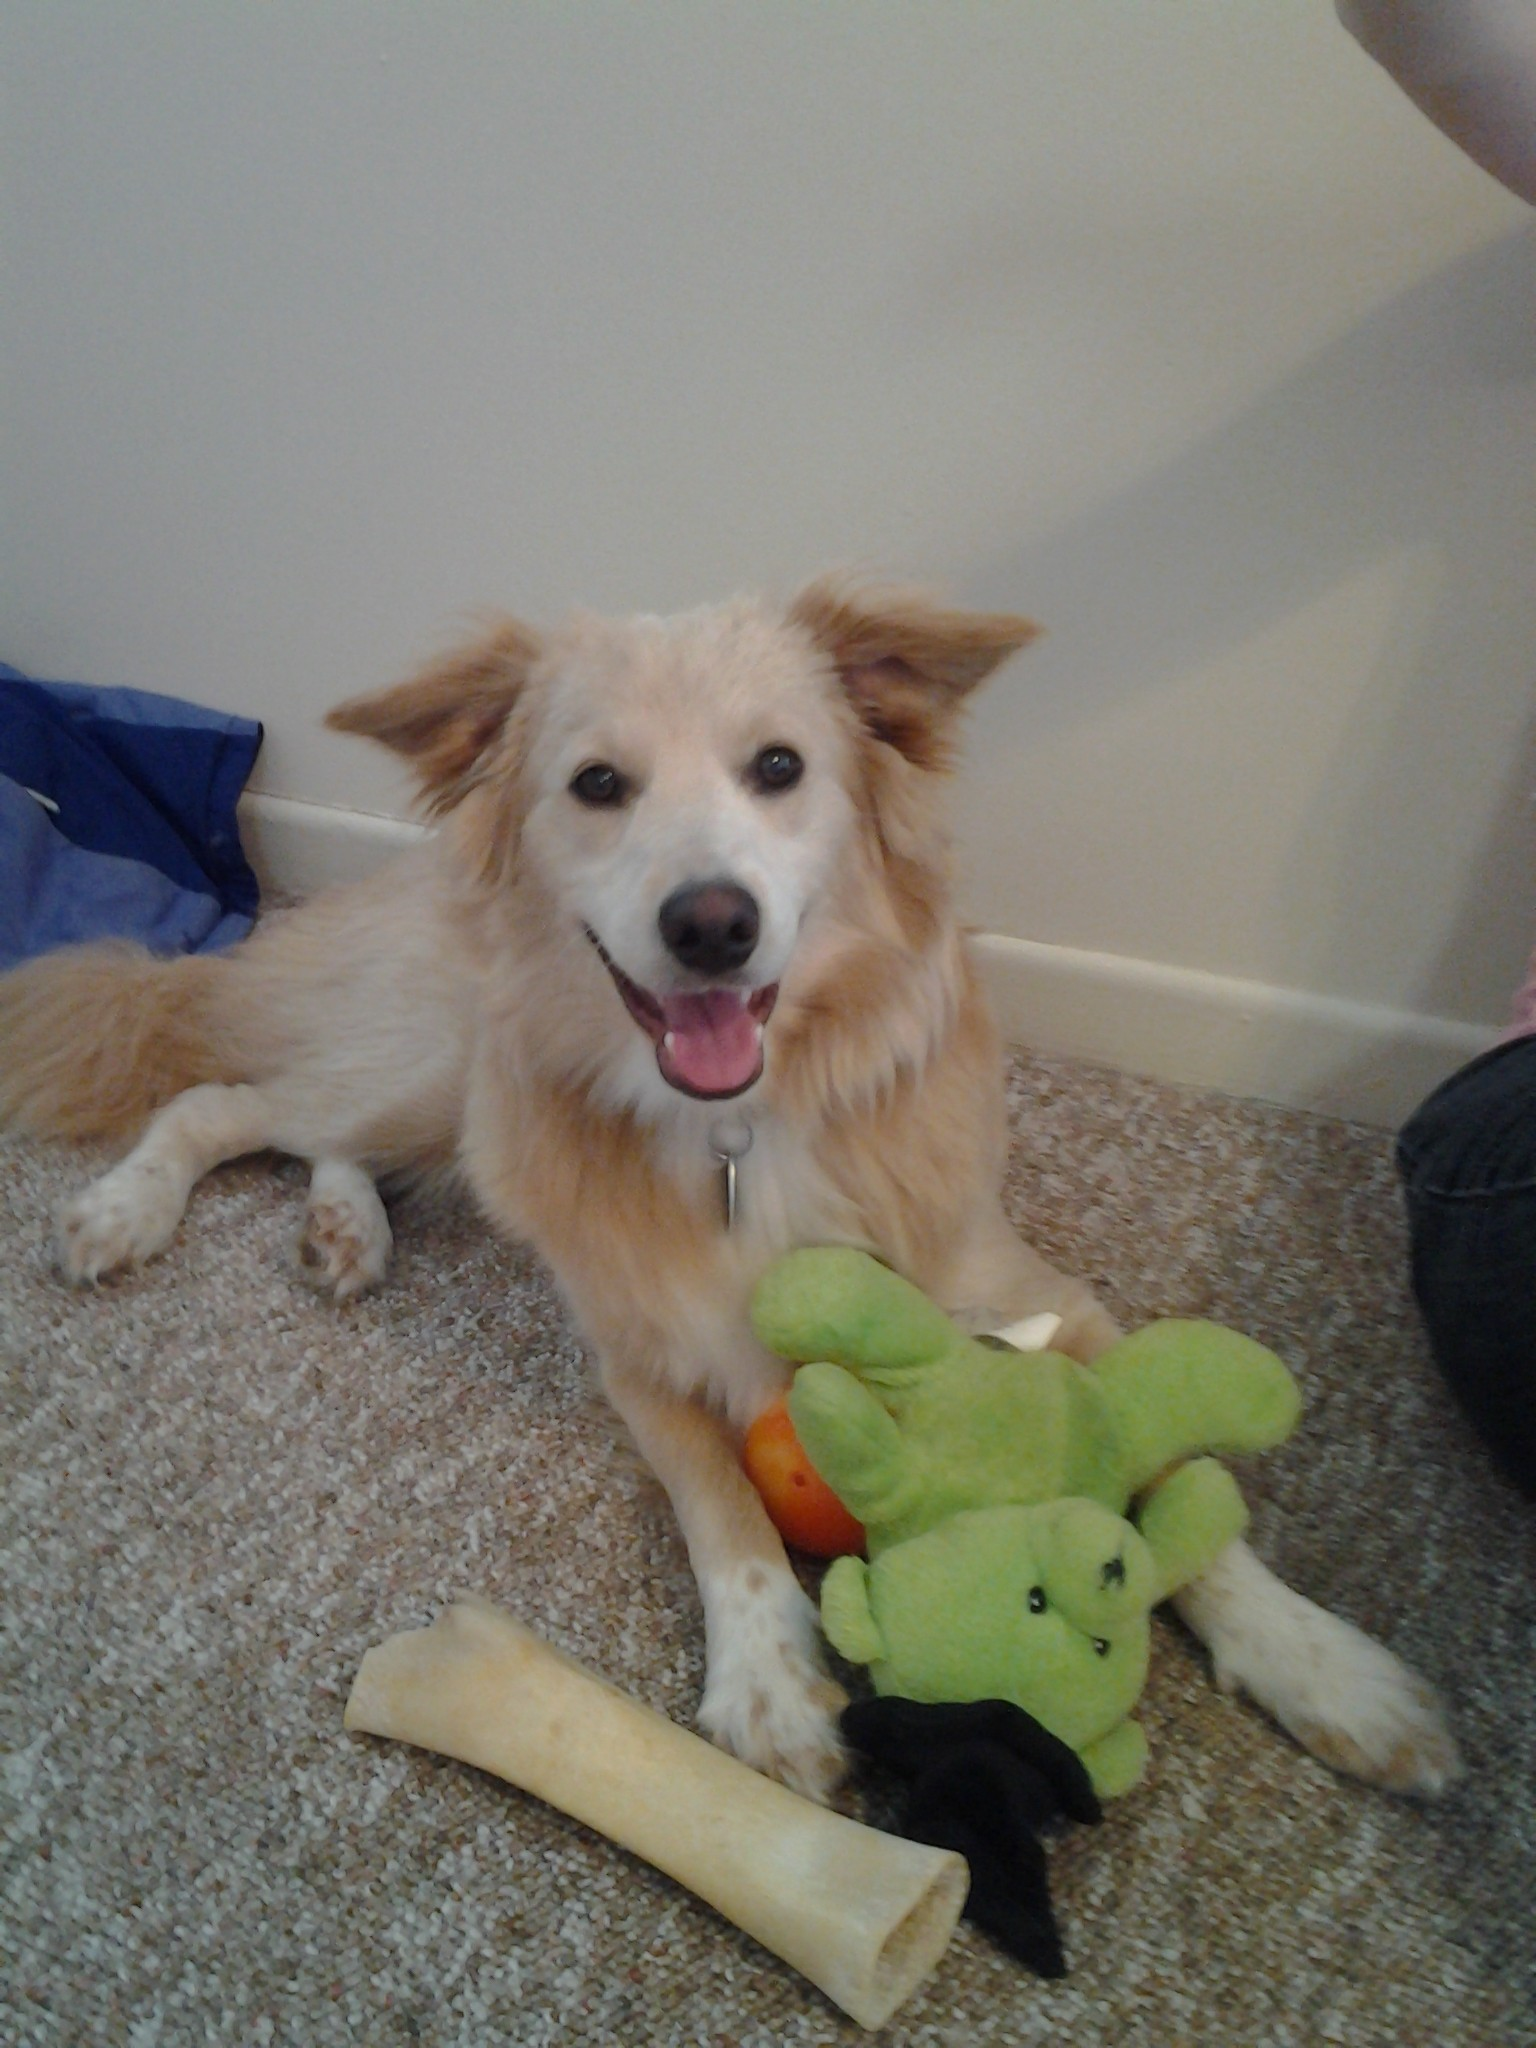 This week amy shares the story of how she rescued and adopted kody